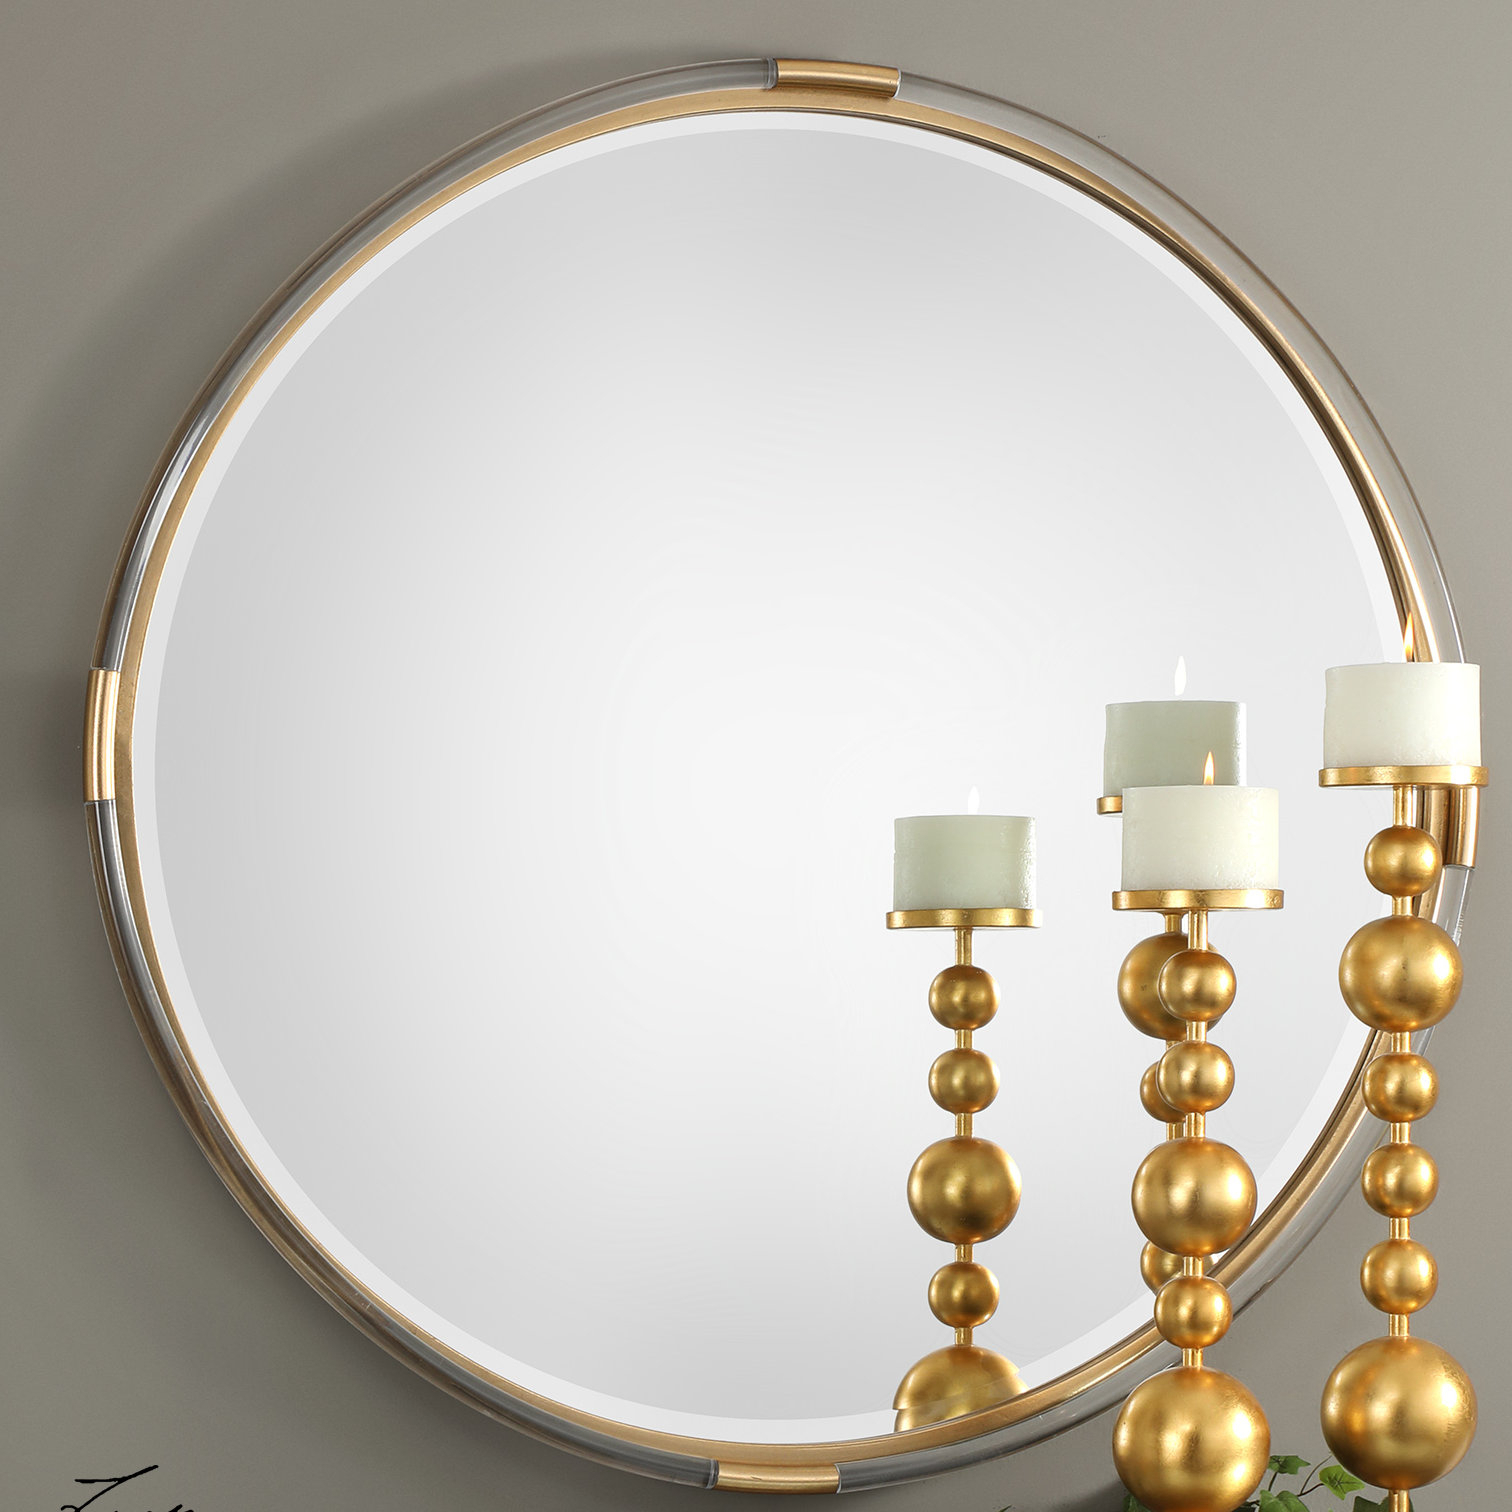 Cabrillo Mackai Modern & Contemporary Accent Mirror Intended For Mahanoy Modern And Contemporary Distressed Accent Mirrors (Image 4 of 20)